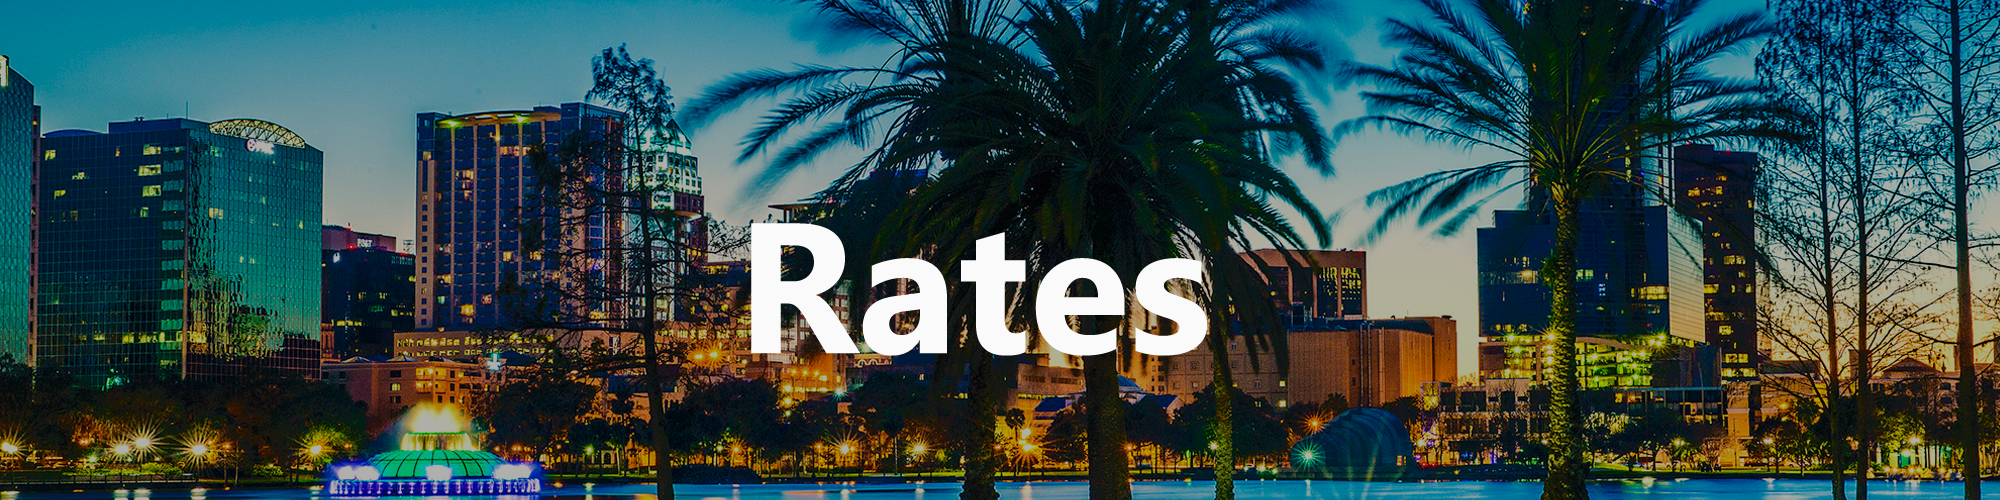 Beachline Rates